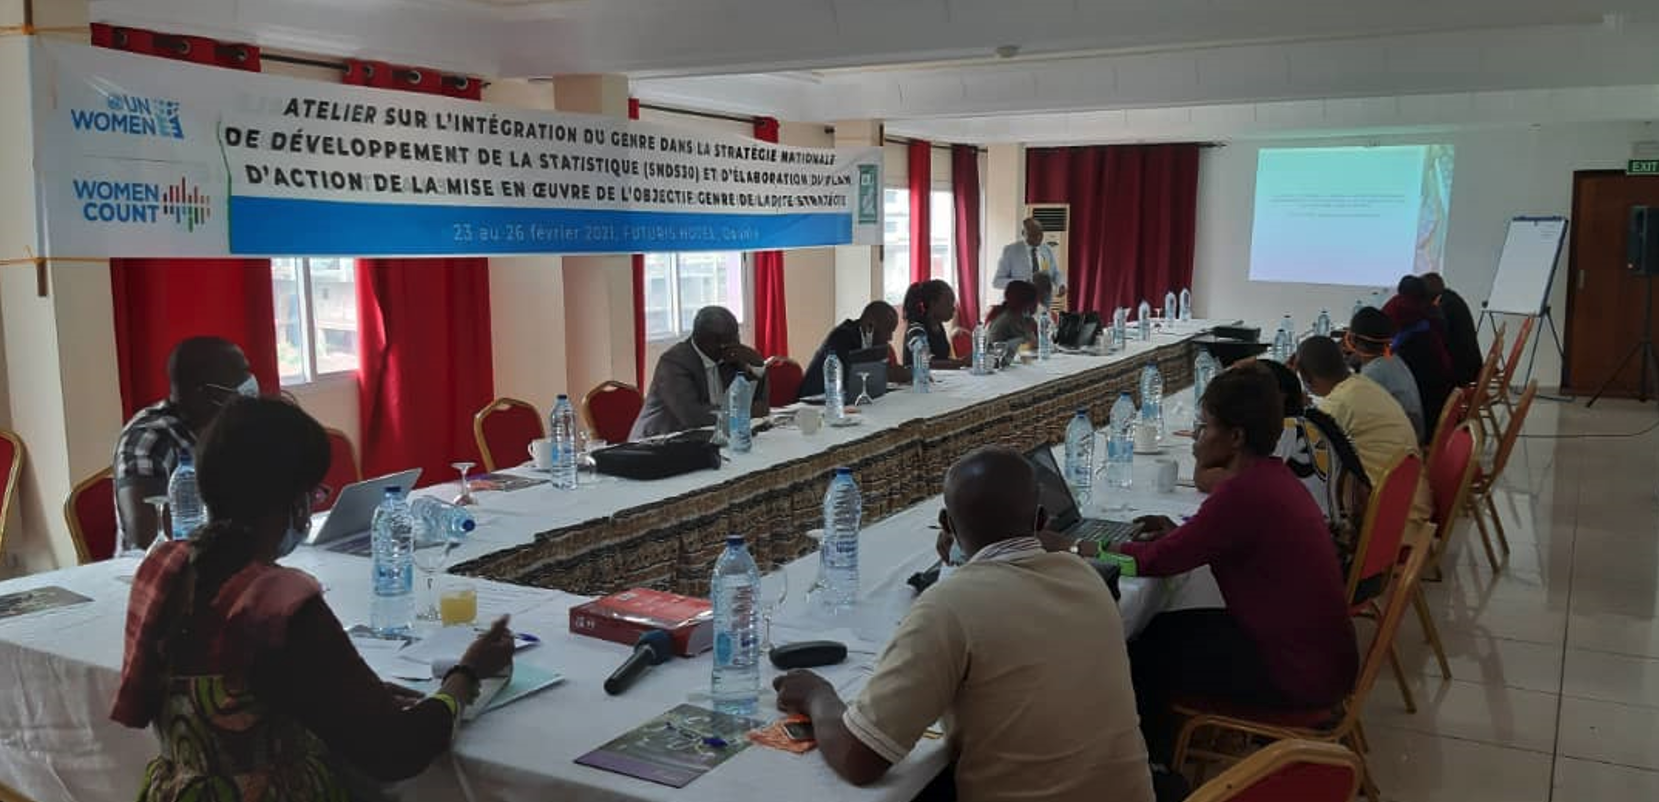 UN WOMEN support gender mainstreaming in the future National Strategy for the Development of Statistics 2030 (NSDS 2030) Cameroon